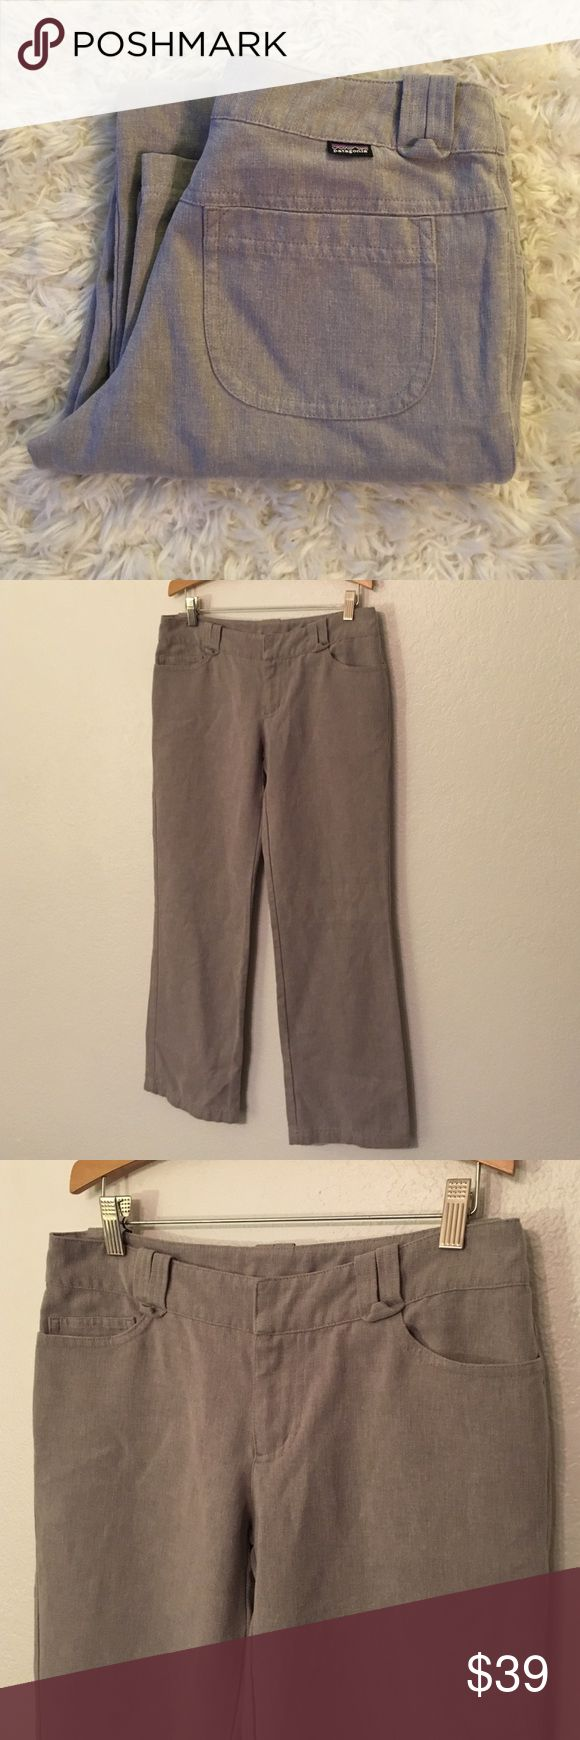 Patagonia Pants These pants are a grey color. They have pockets in front and sleek pockets in the back. These are in gently used condition. Size 2 Patagonia Pants